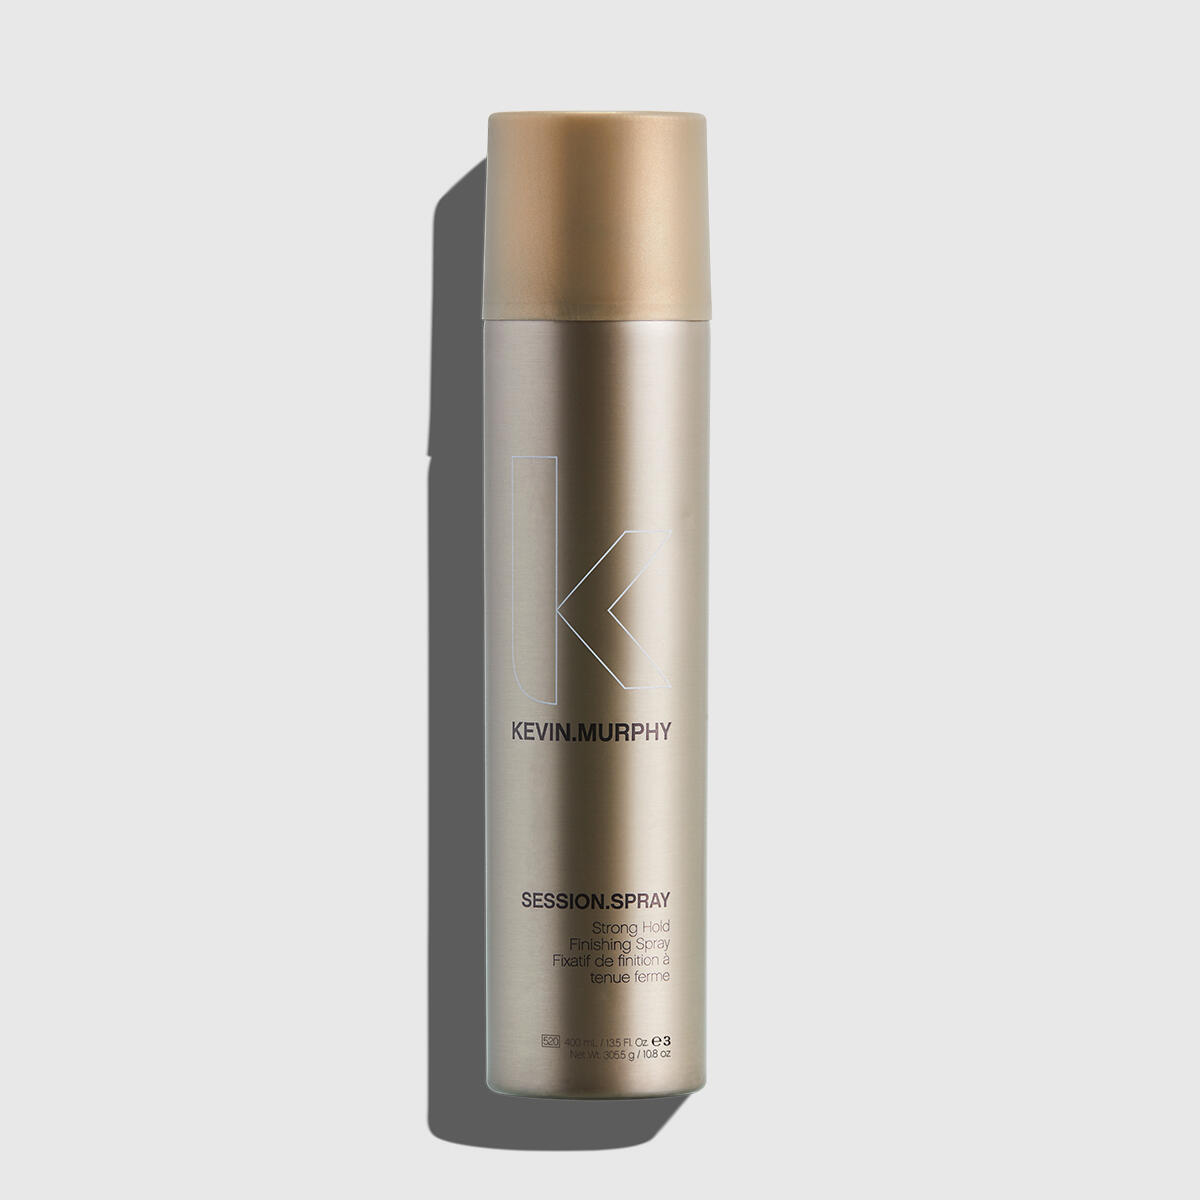 Kevin Murphy Session Spray null